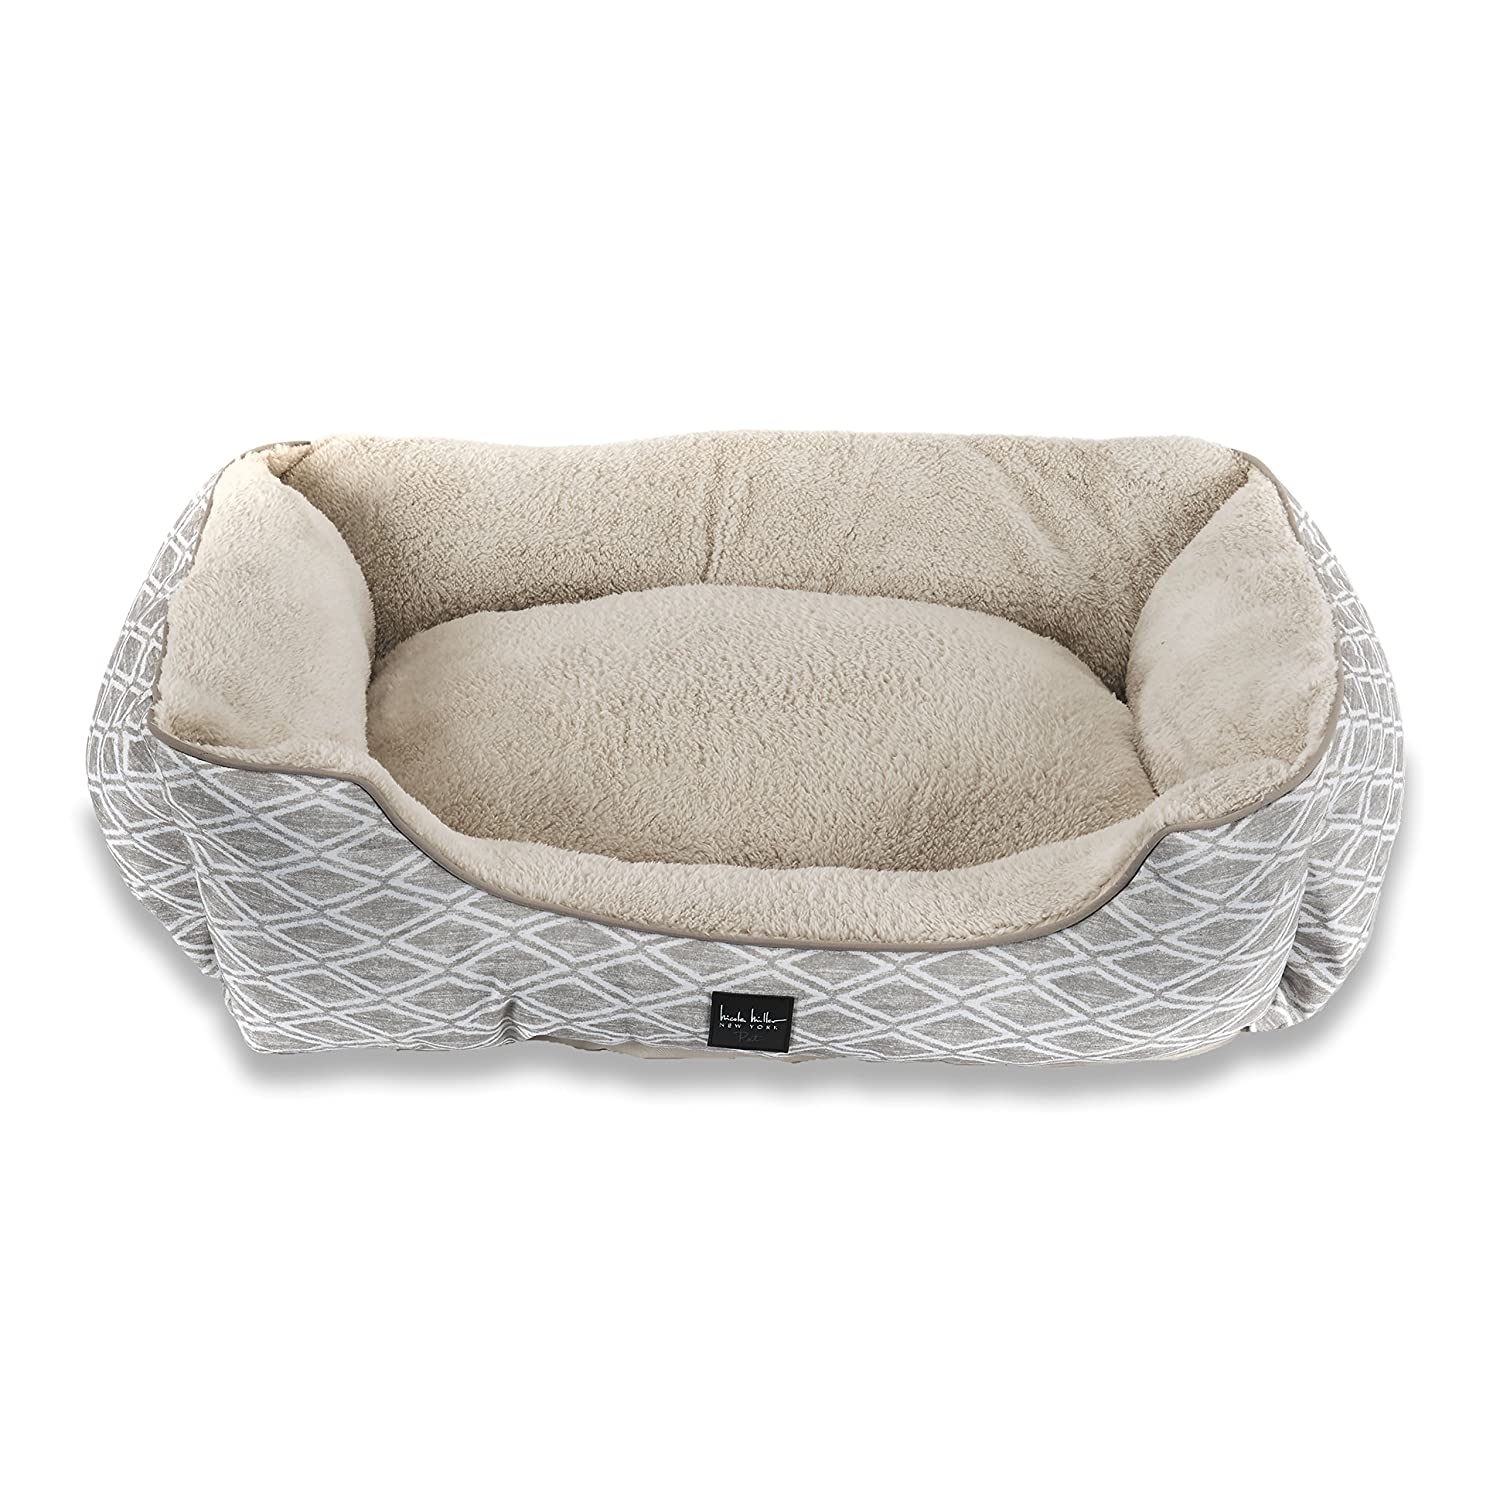 Beige Diamond 20x28 Cuddler Beige Diamond 20x28 Cuddler Home Dynamix, Beige Diamond, 20x28 Cuddler